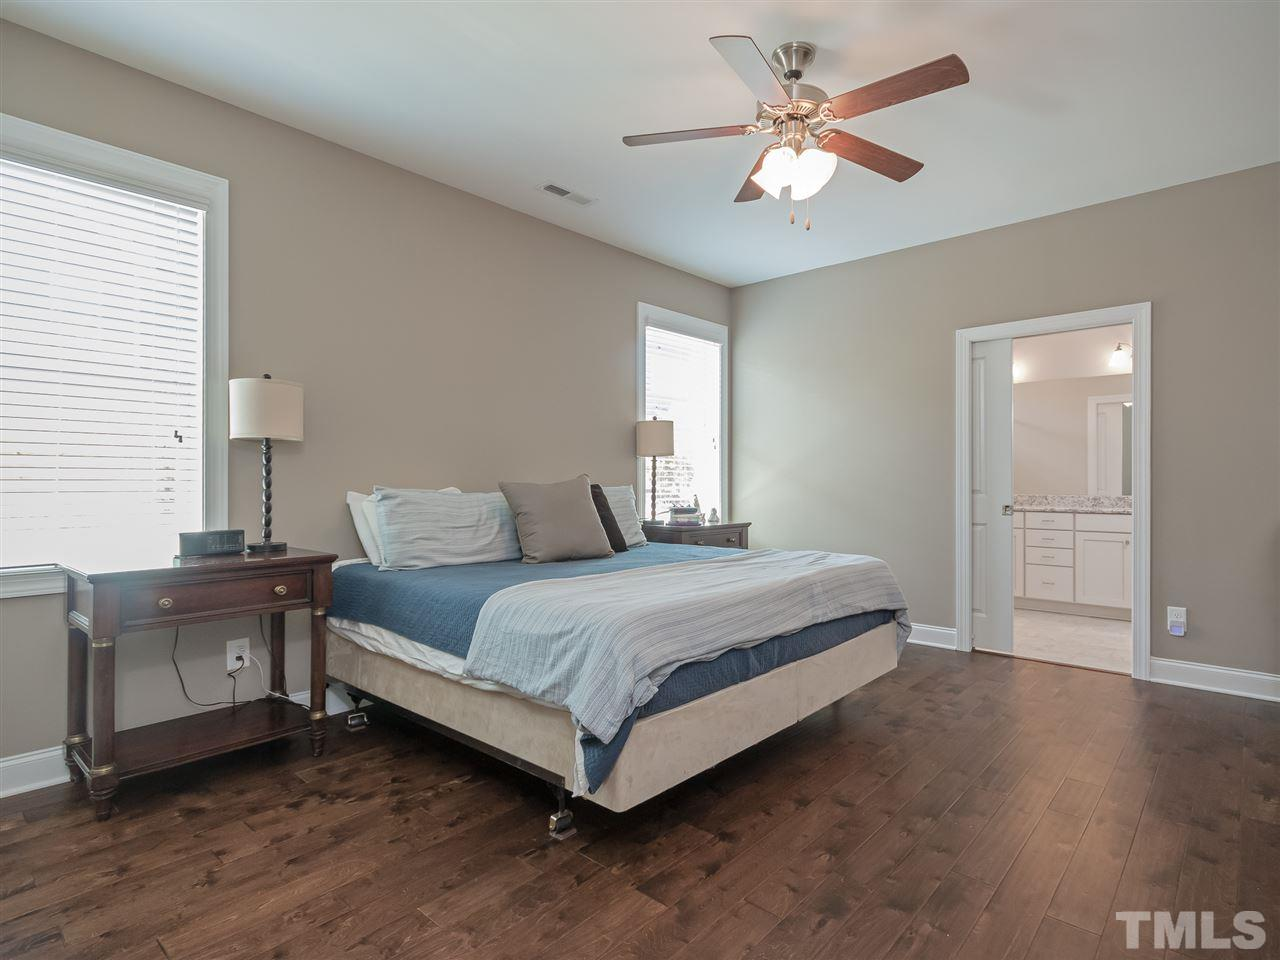 Large owner's suite with upgraded hardwoods floors instead of the standard carpet. Easy access with a wide pocket door for easy access to the owner's bath.